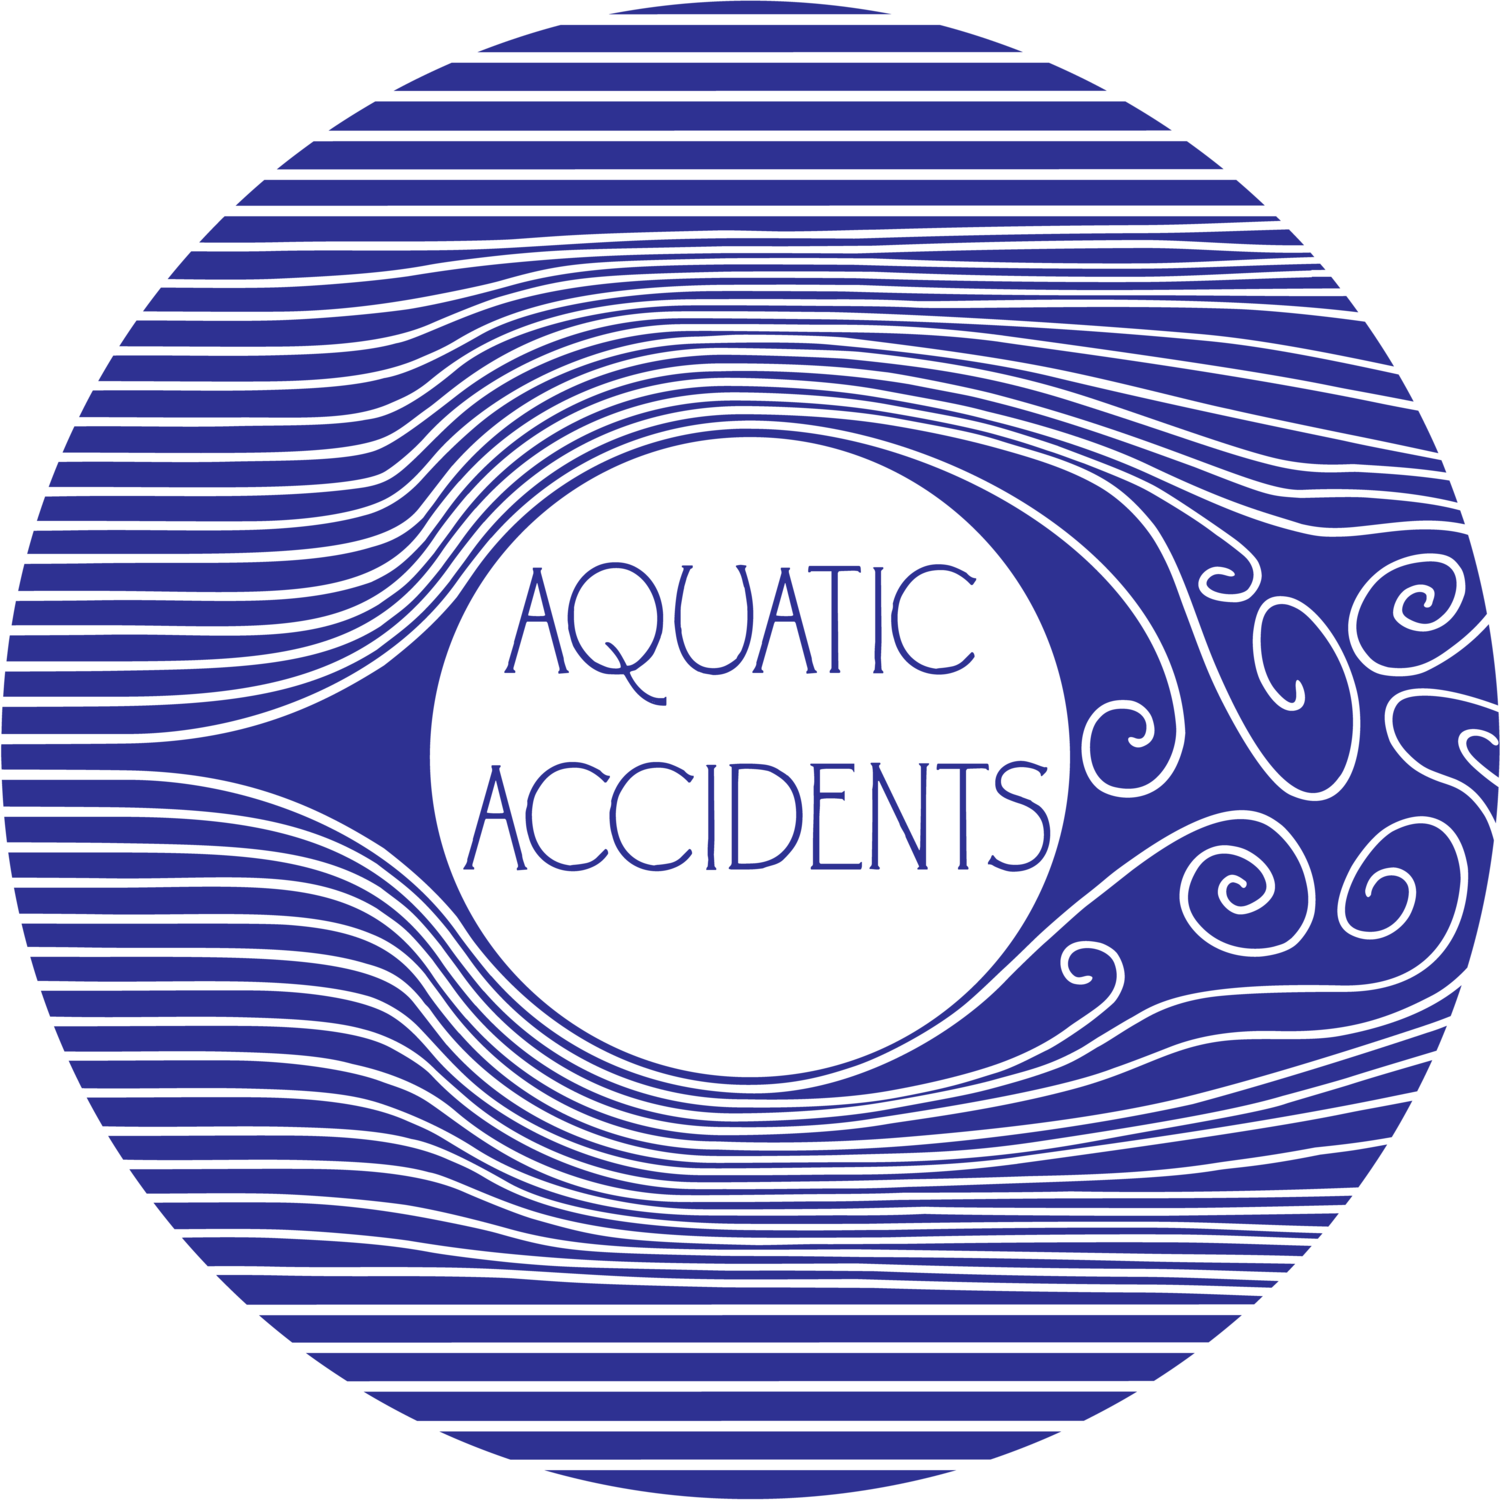 Aquatic Accidents: Expert witness consulting by Ph.D. Scientists